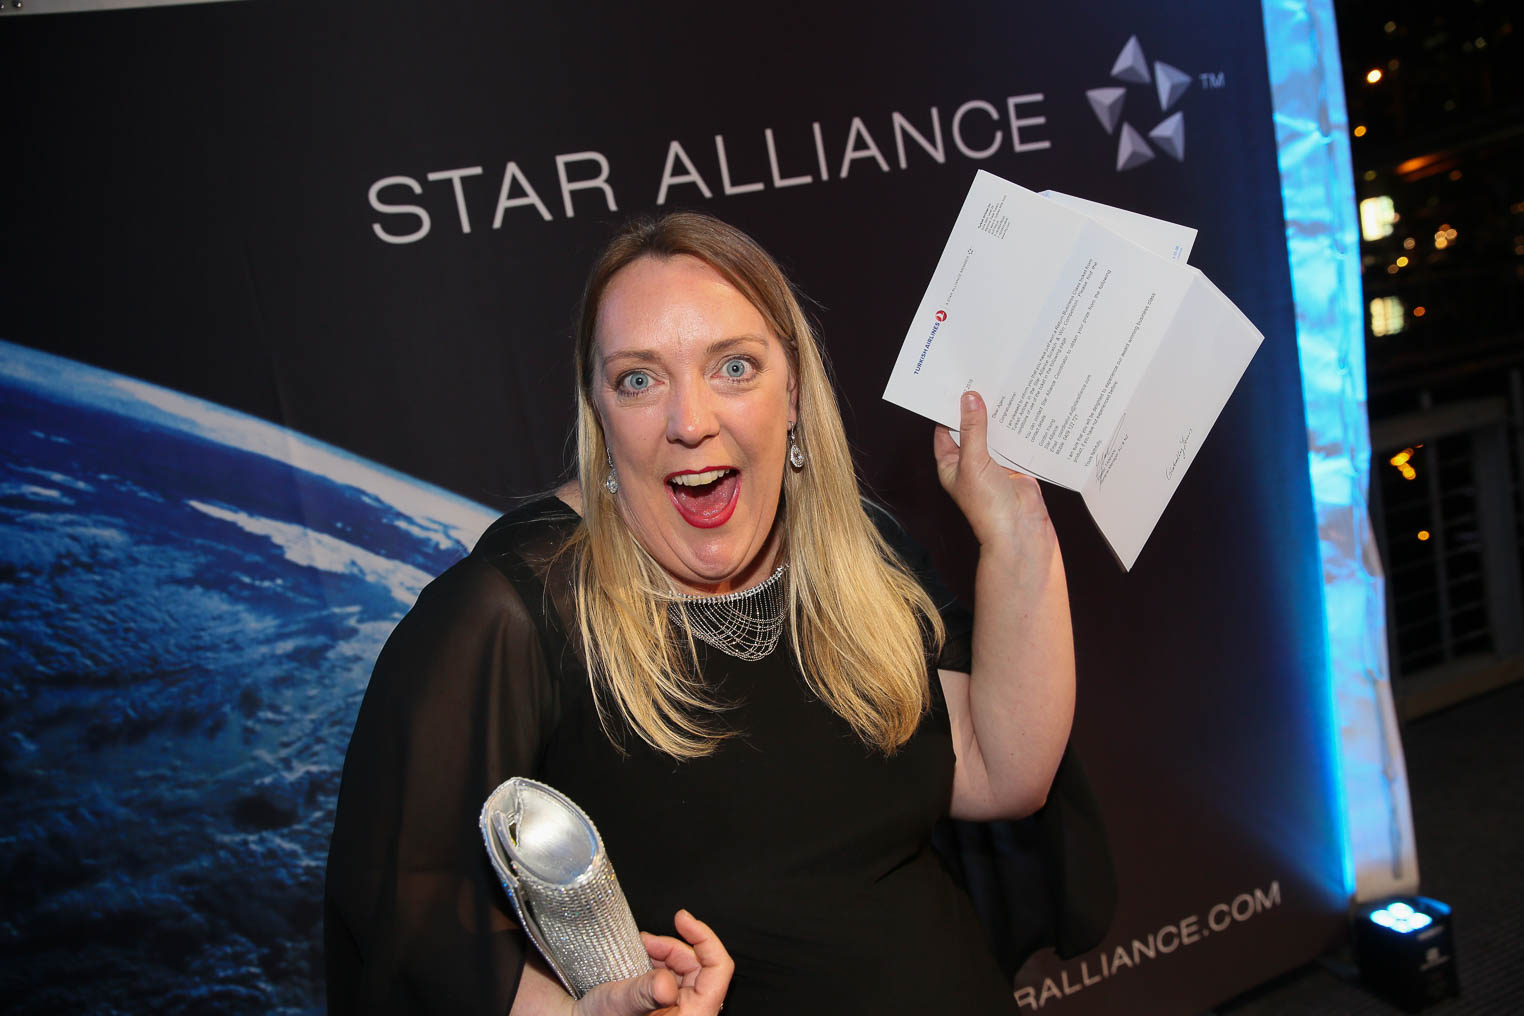 Star Alliance_6_Scratch and Win_Catherine Marshall (Travel Cube)_winner of Business Class ticket from Turkish Airlines